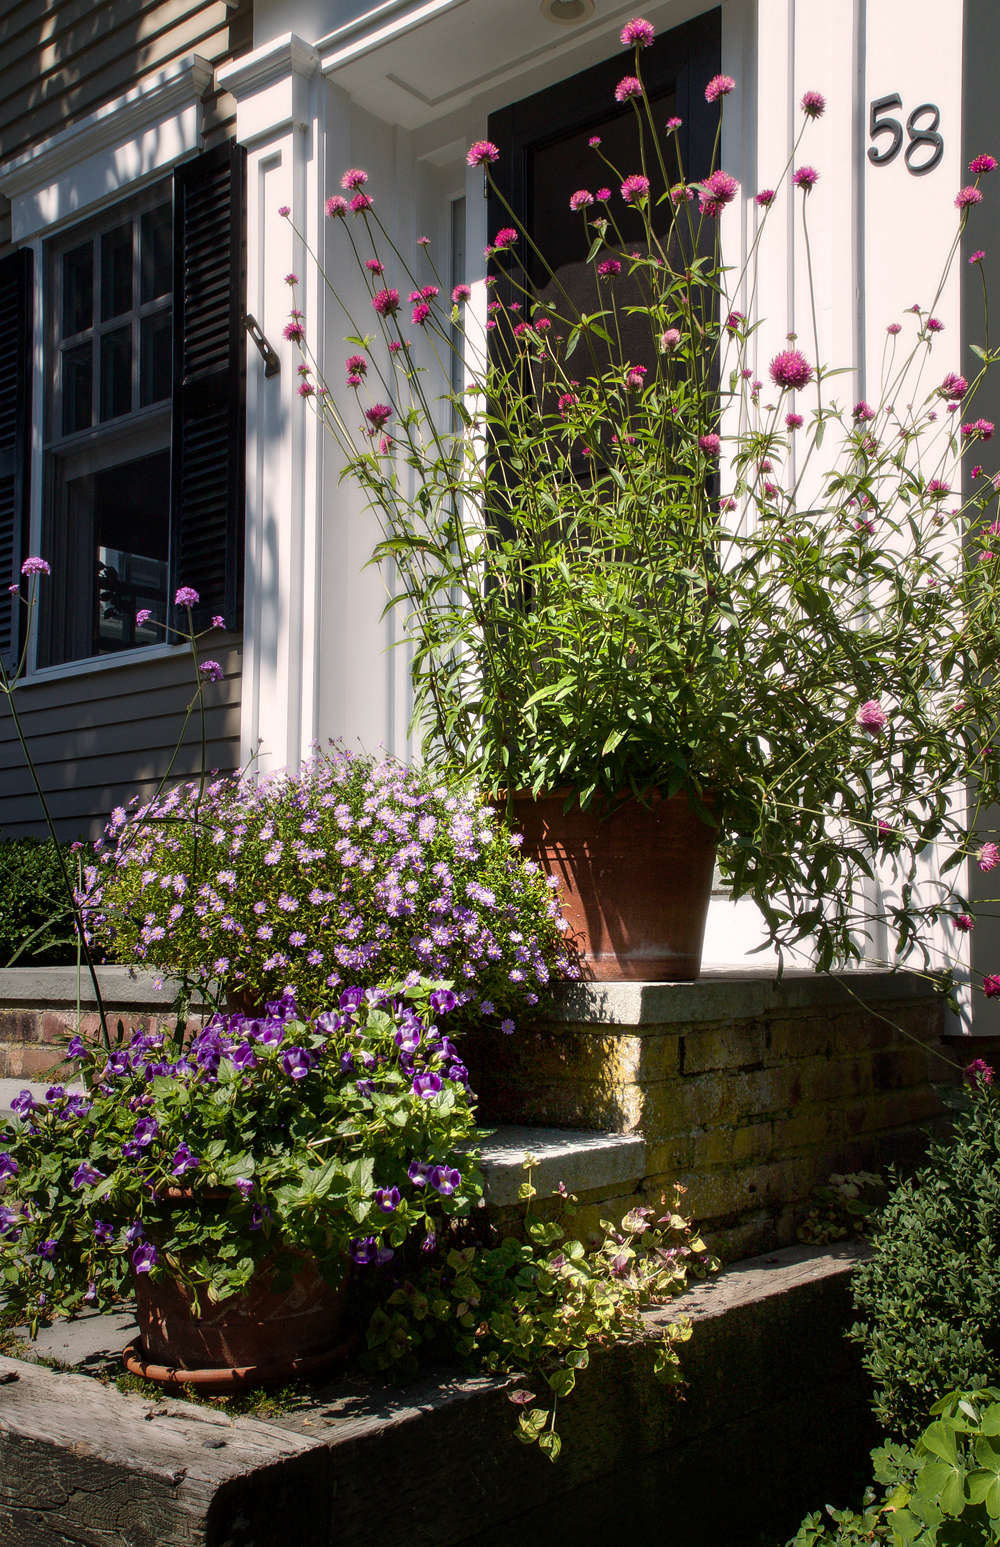 10 garden ideas to steal from provincetown on cape cod gardenista 10 ideas to steal for gardens of ptown steps gardenista izmirmasajfo